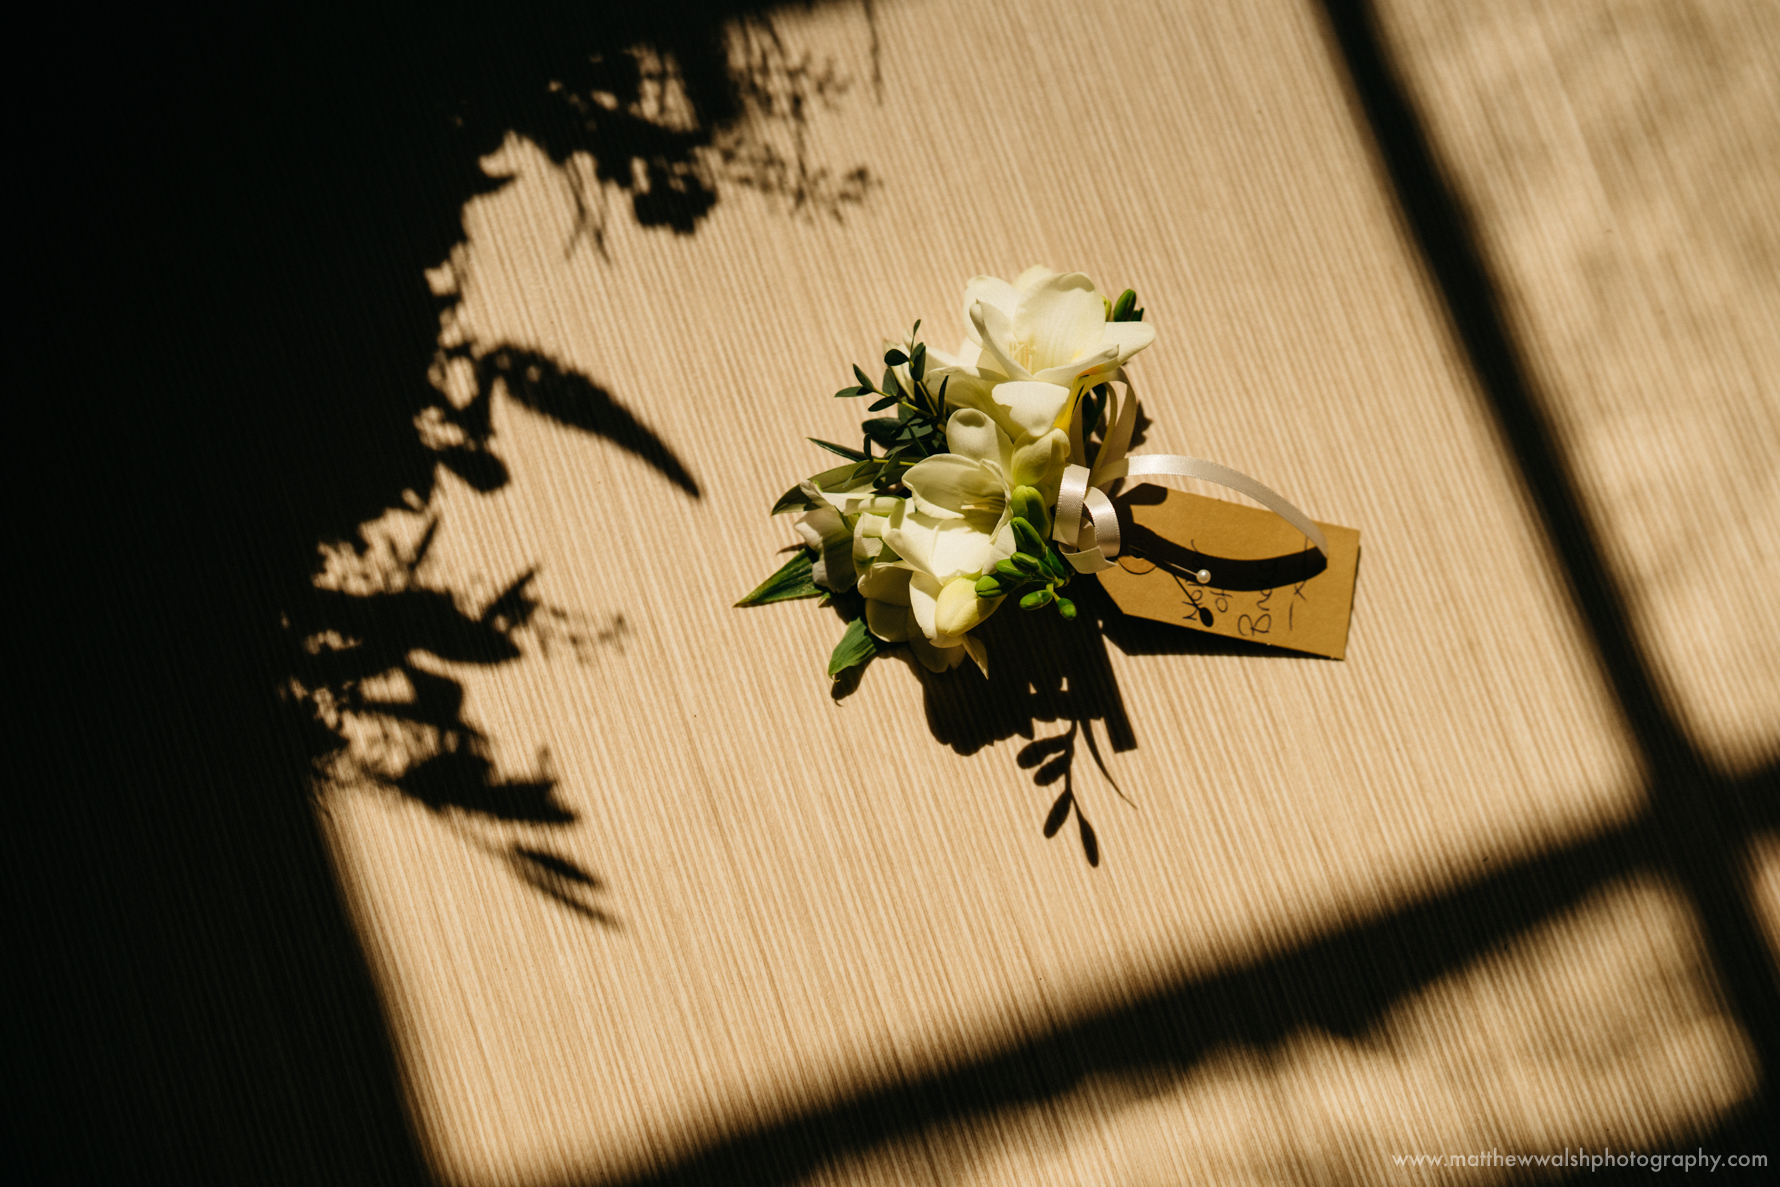 Mother of the brides button hole flowers lay in a pocket of sunlight